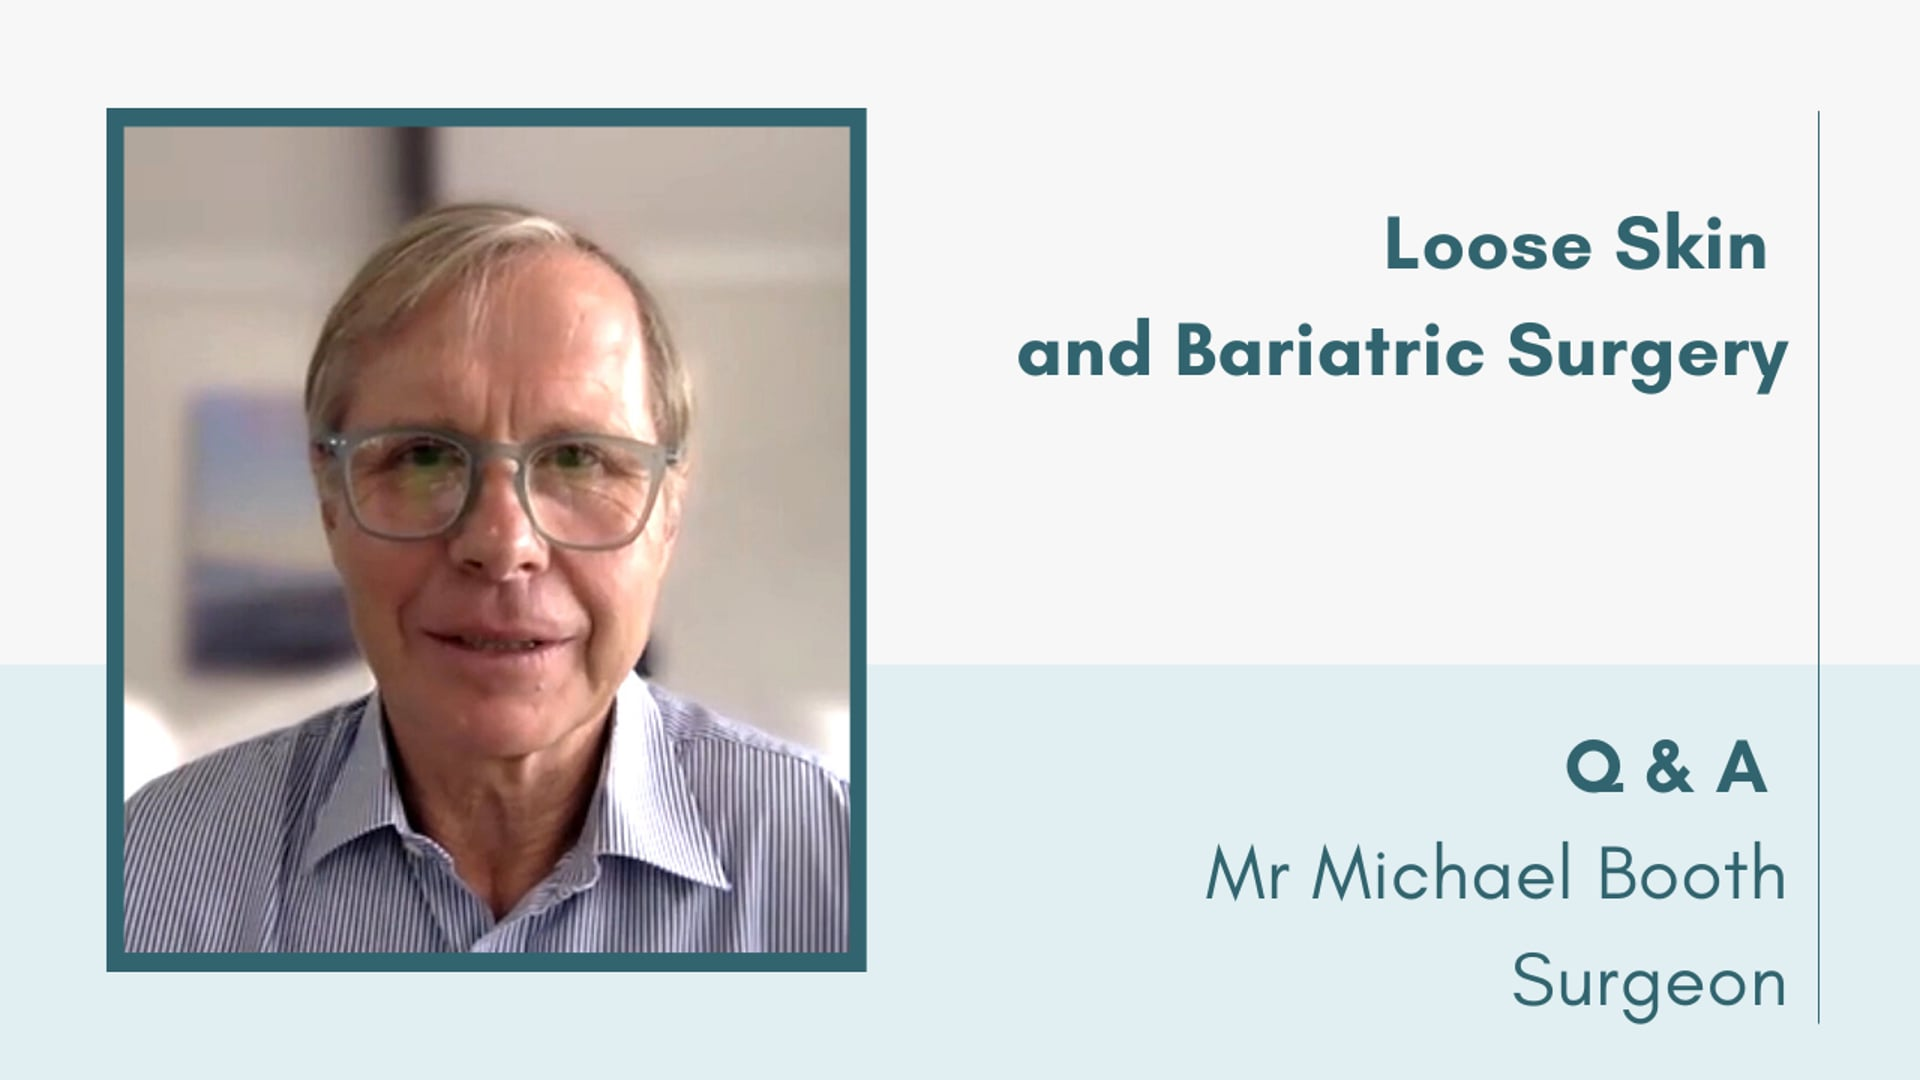 Loose Skin and Bariatric Surgery